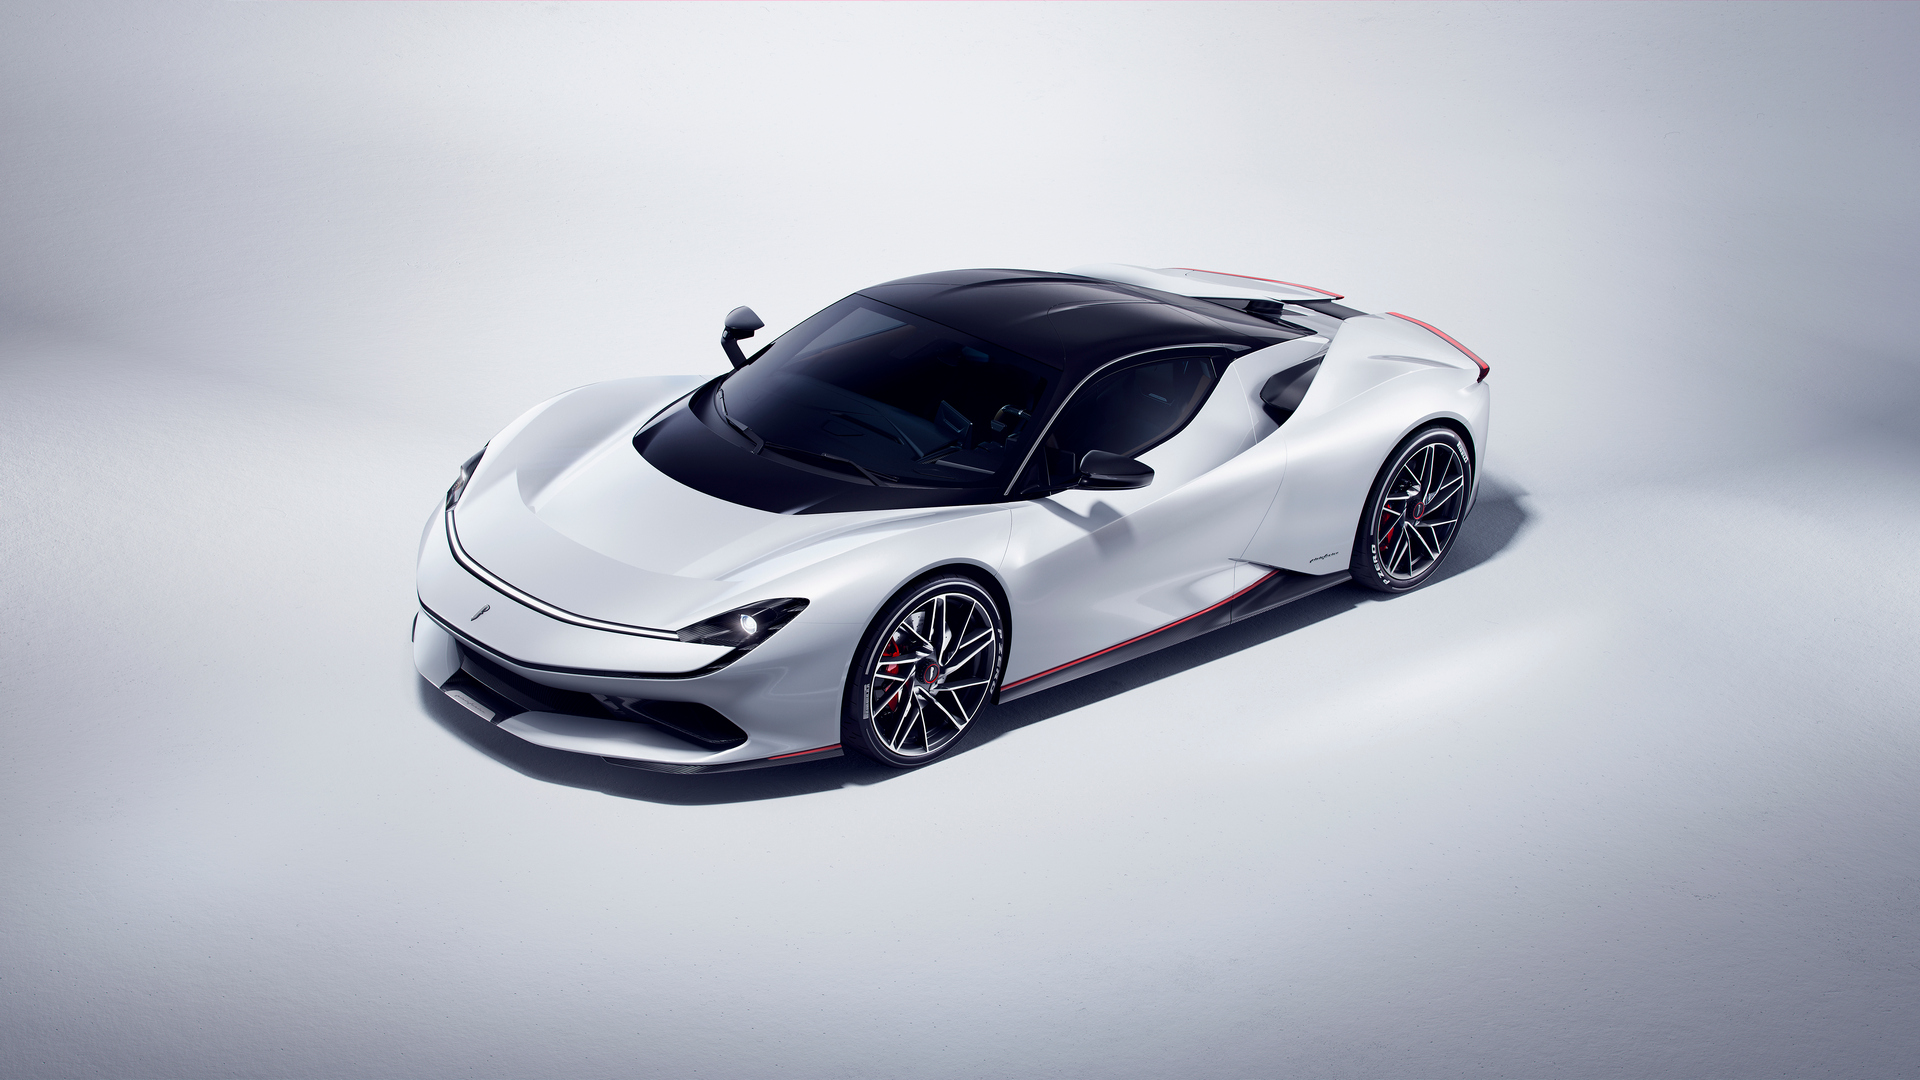 The Italian coachbuilder surprised the audience of the last year's Geneva show with the Battista, its first complete vehicle project – and a wild hypercar, at that. Now, the car is finally ready to commence road tests.